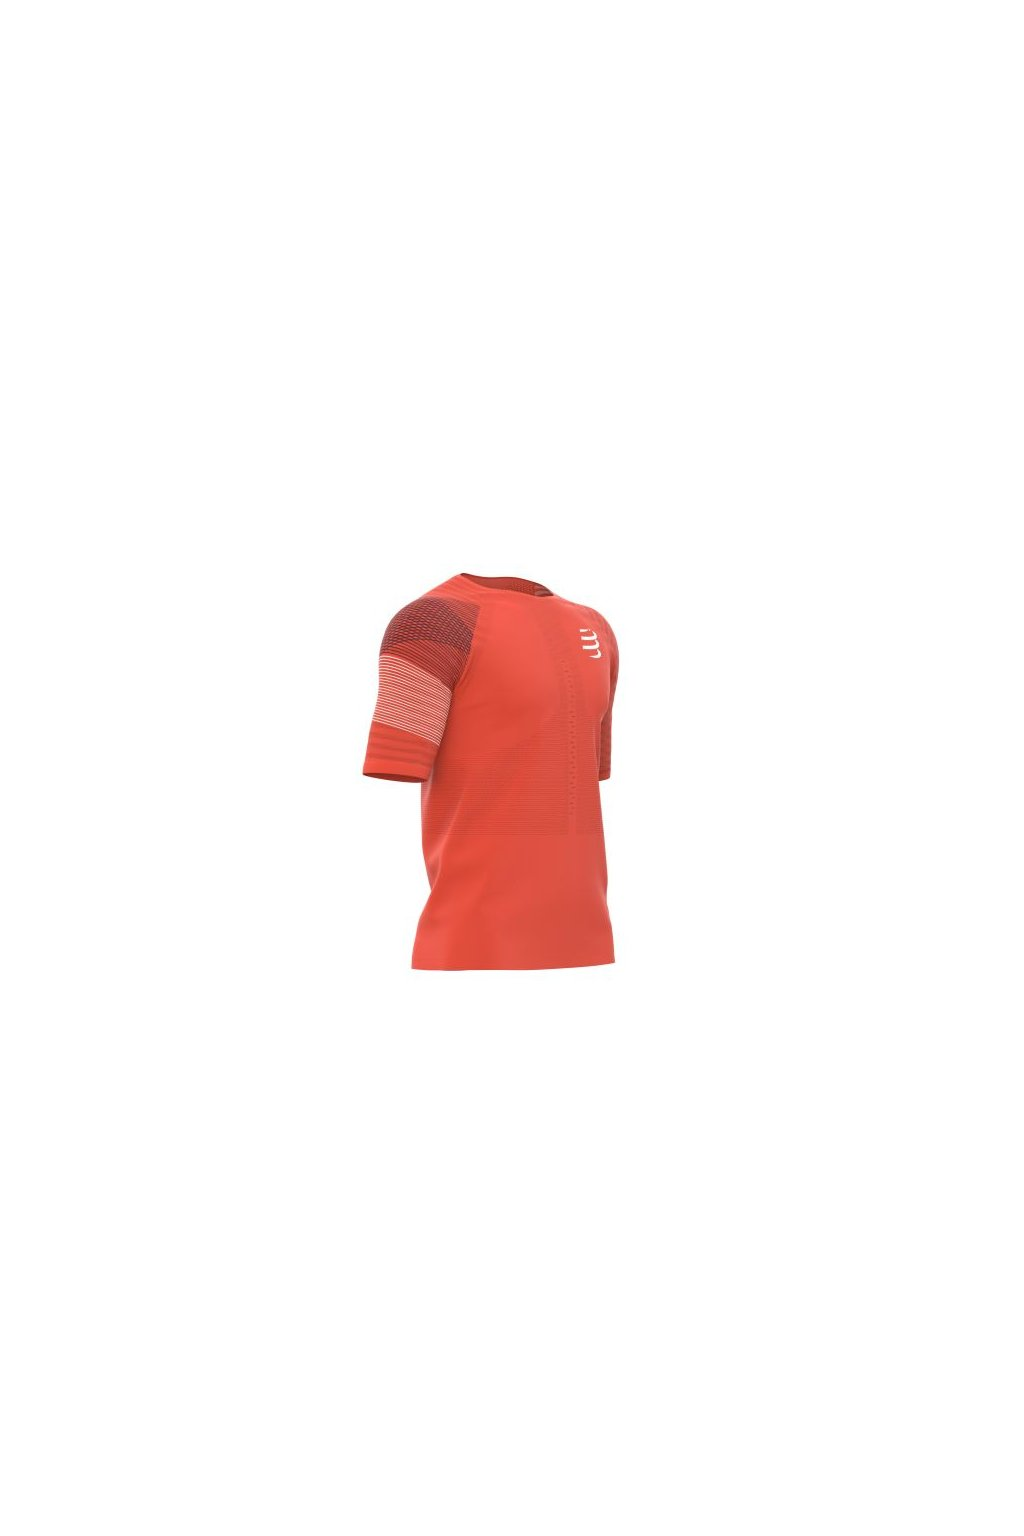 racing ss tshirt man blood orange s